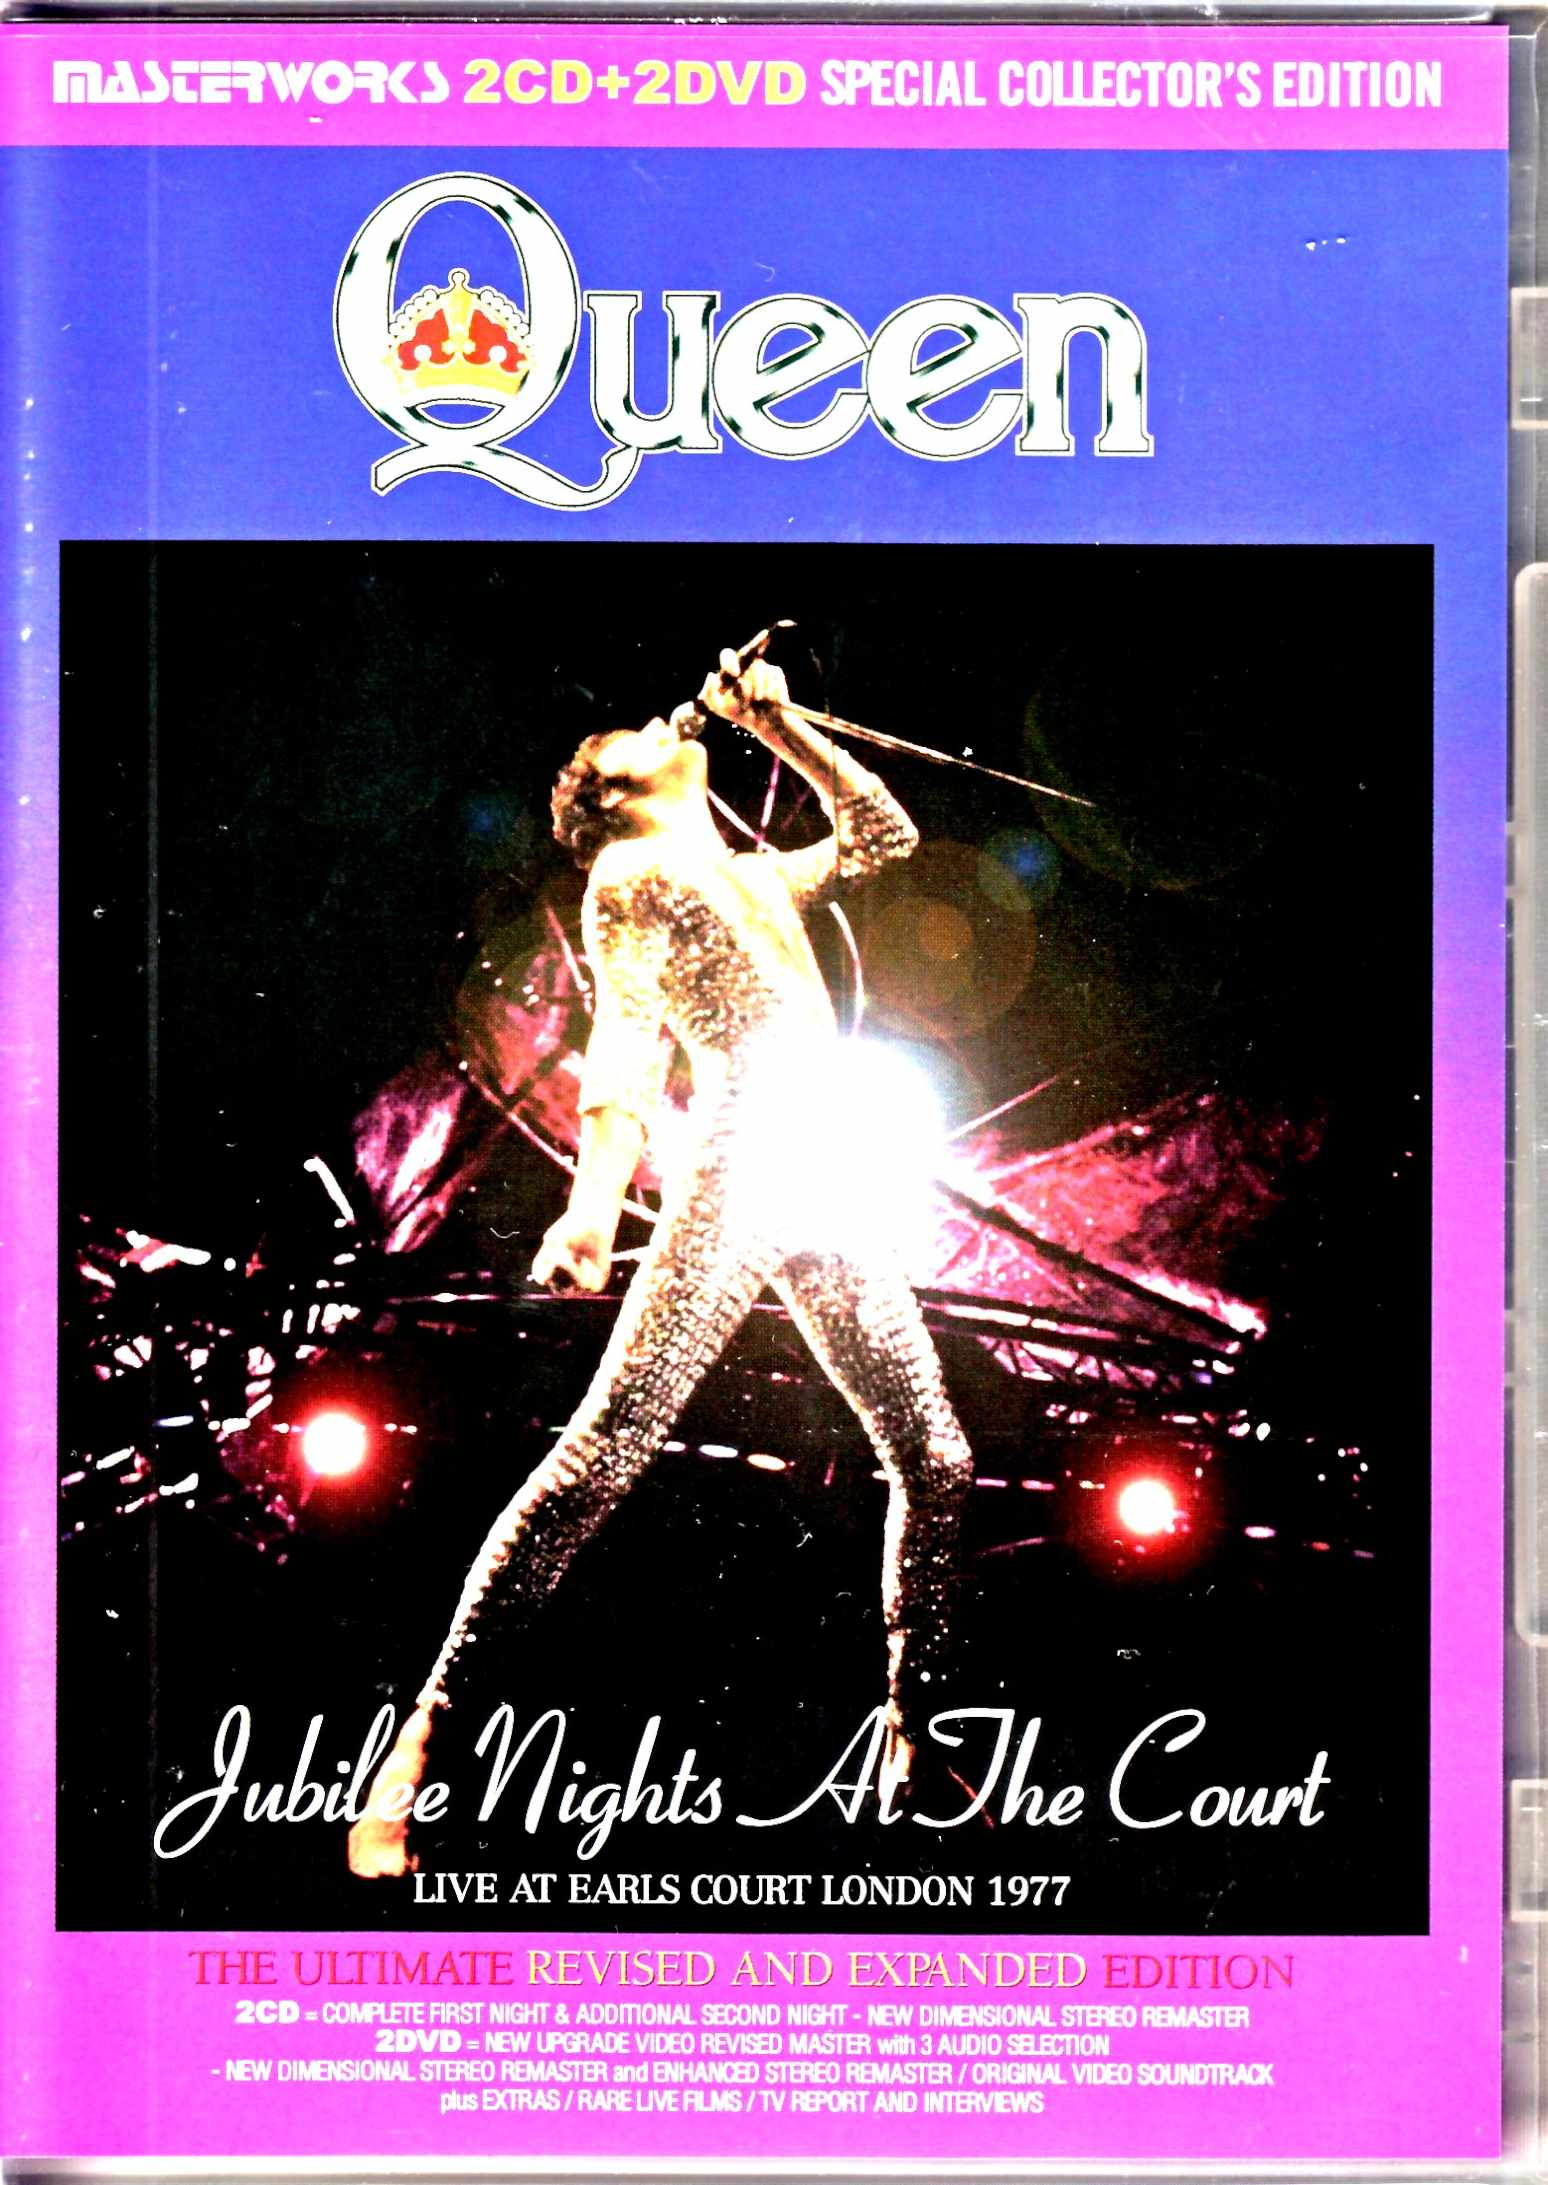 Queen クィーン/シルバー・ジュビリー・コンサート London,UK 1977 Ultimate Revised and Expanded Edition